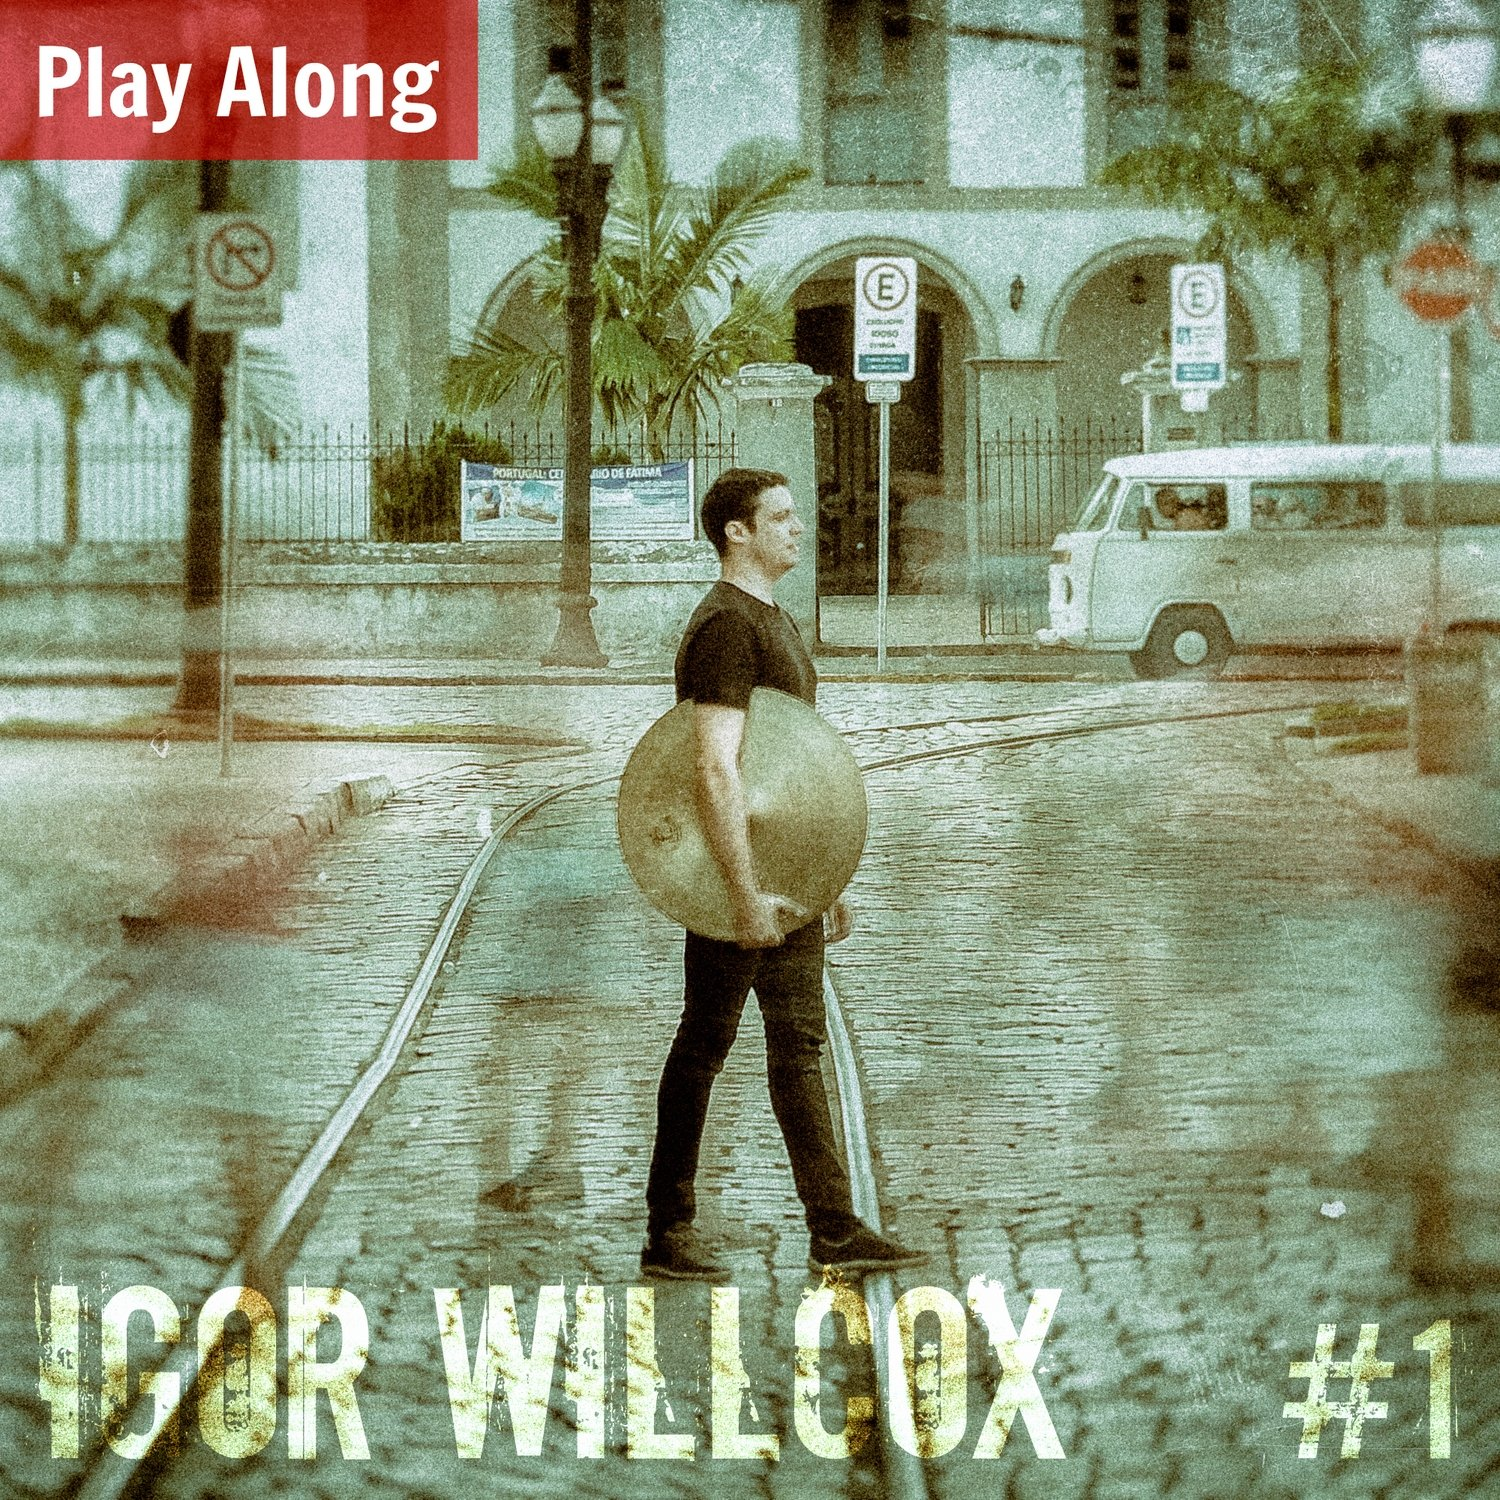 Play Along - Igor Willcox #1